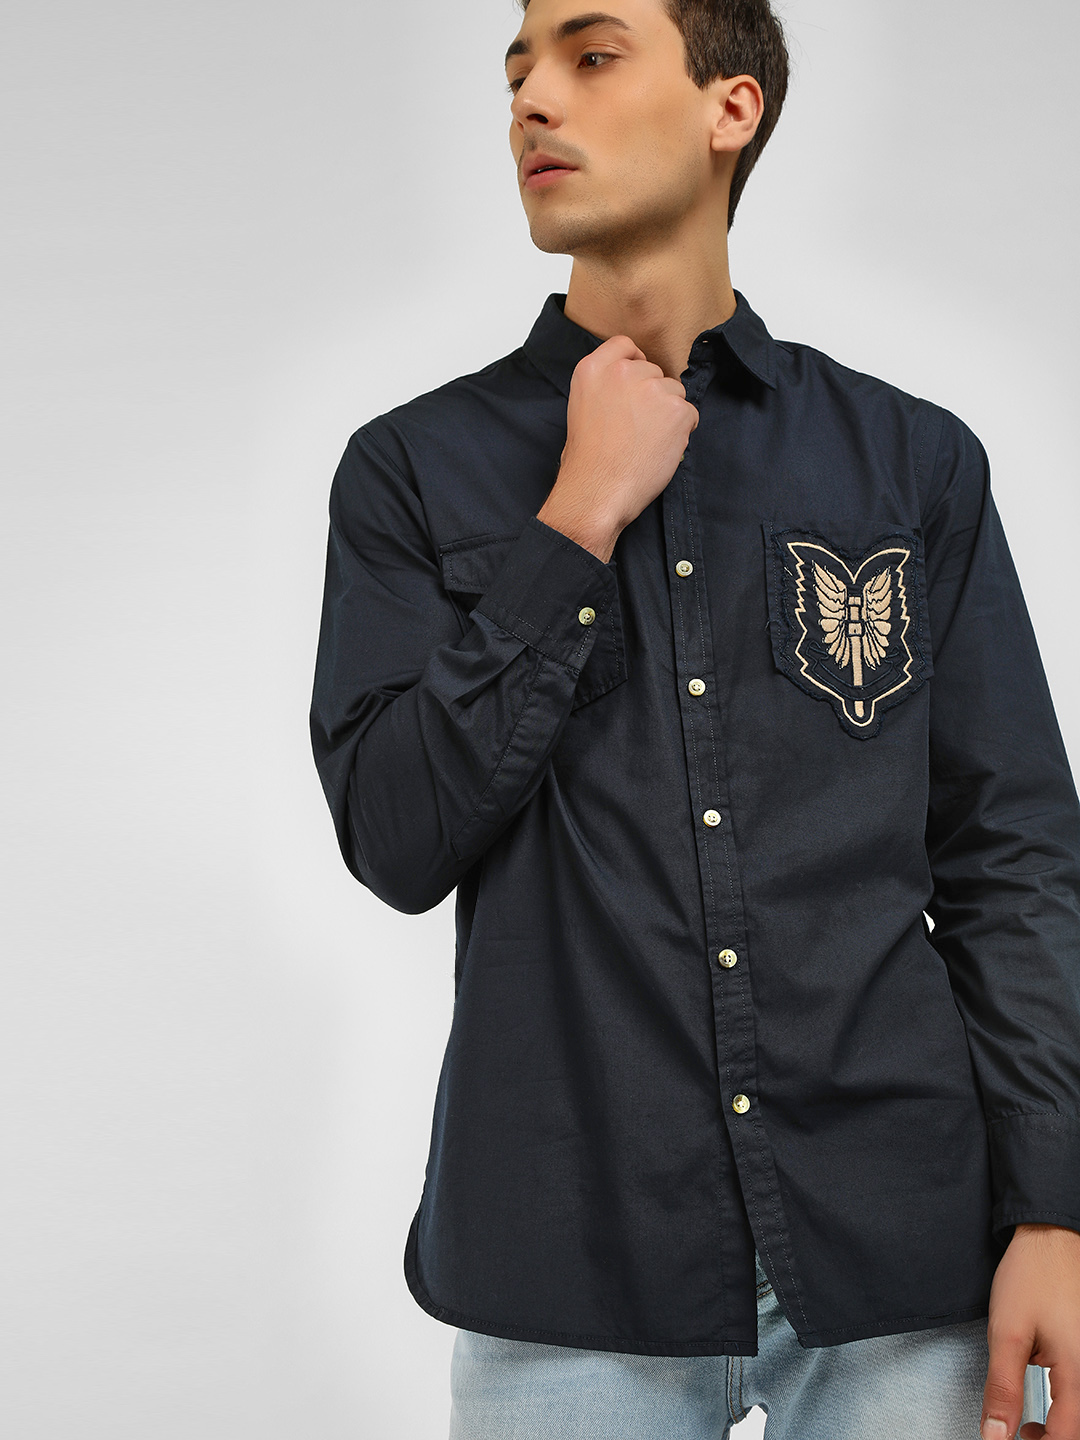 Noble Faith Navy Embroidered Badge Detail Casual Shirt 1